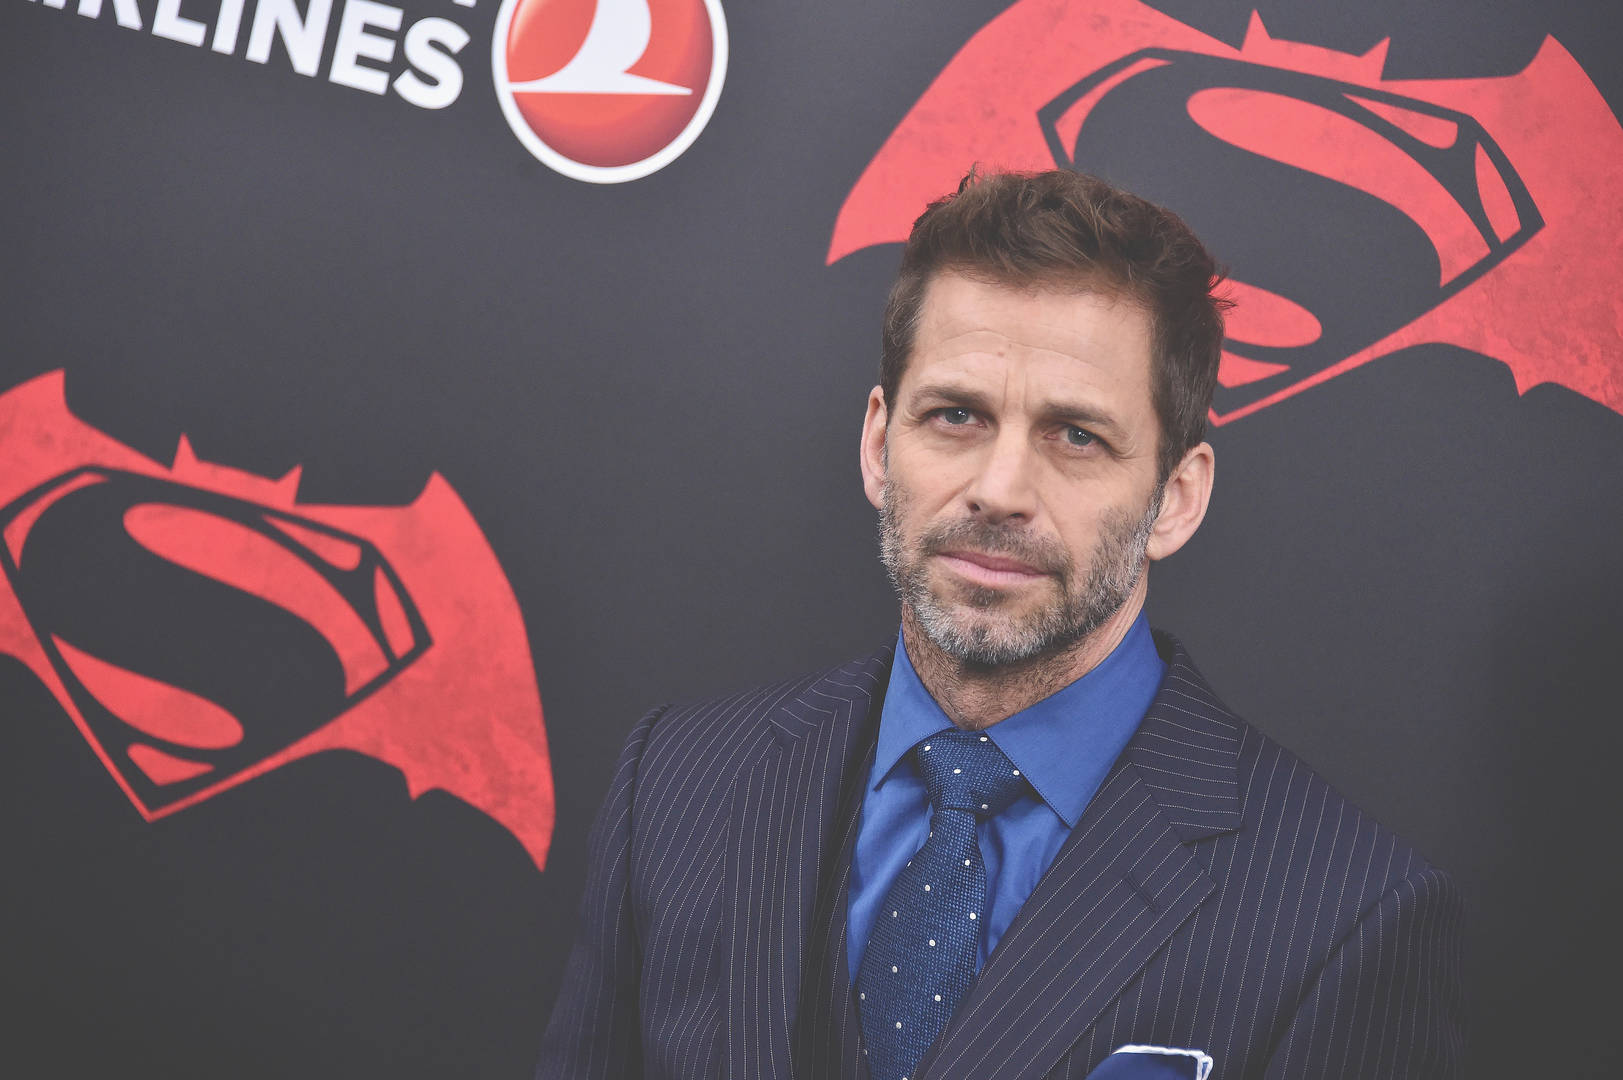 Ben Affleck on Snyder Cut: Excited for the fans to see it